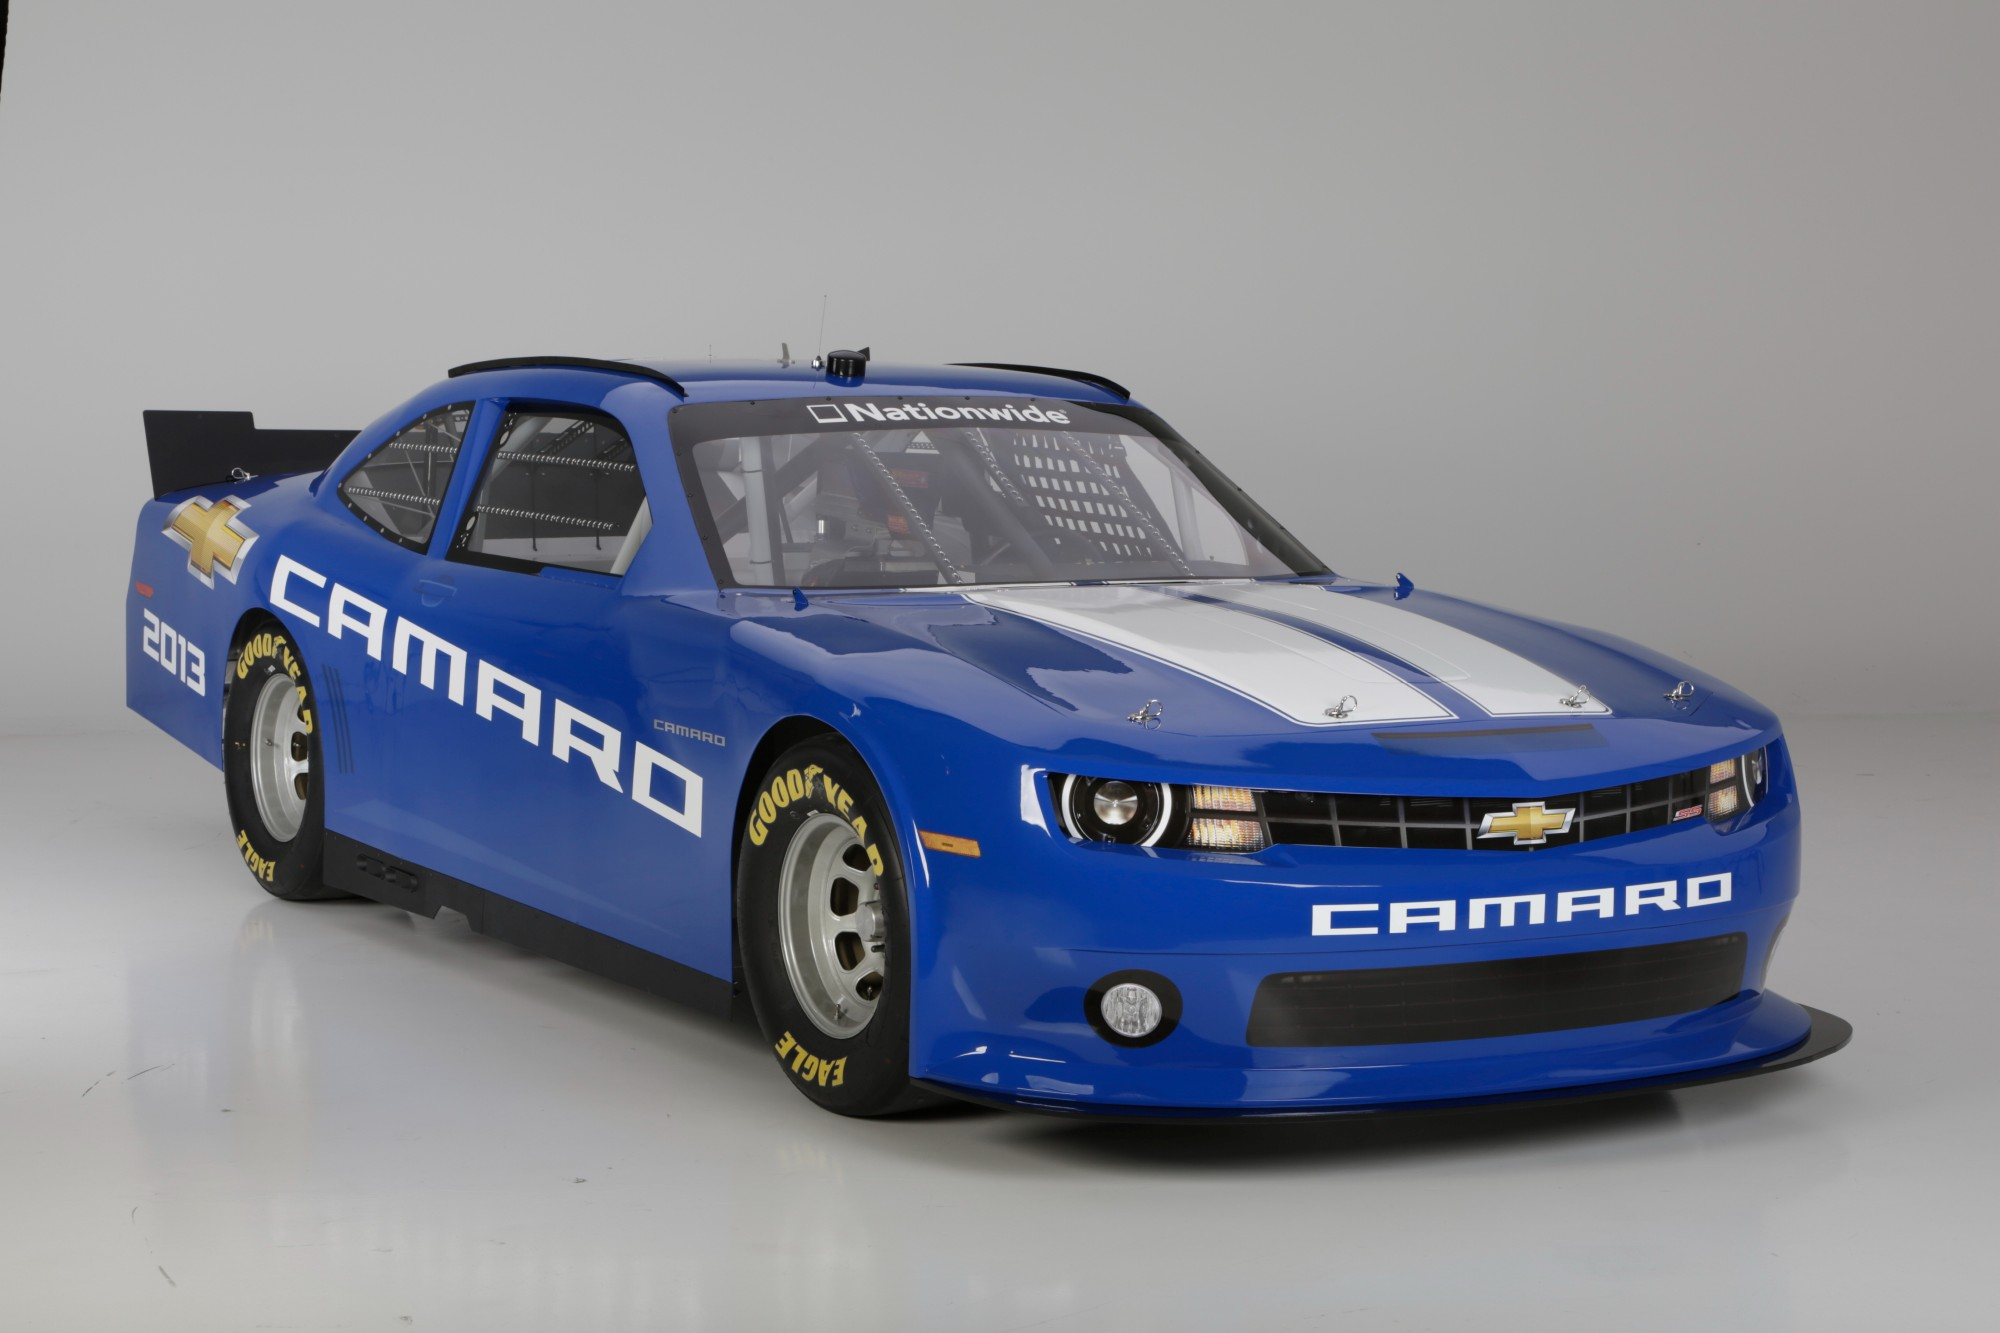 Hellcat 2018 Chevy Camaro >> 2013 Chevy Camaro NASCAR Nationwide Race Car Revealed